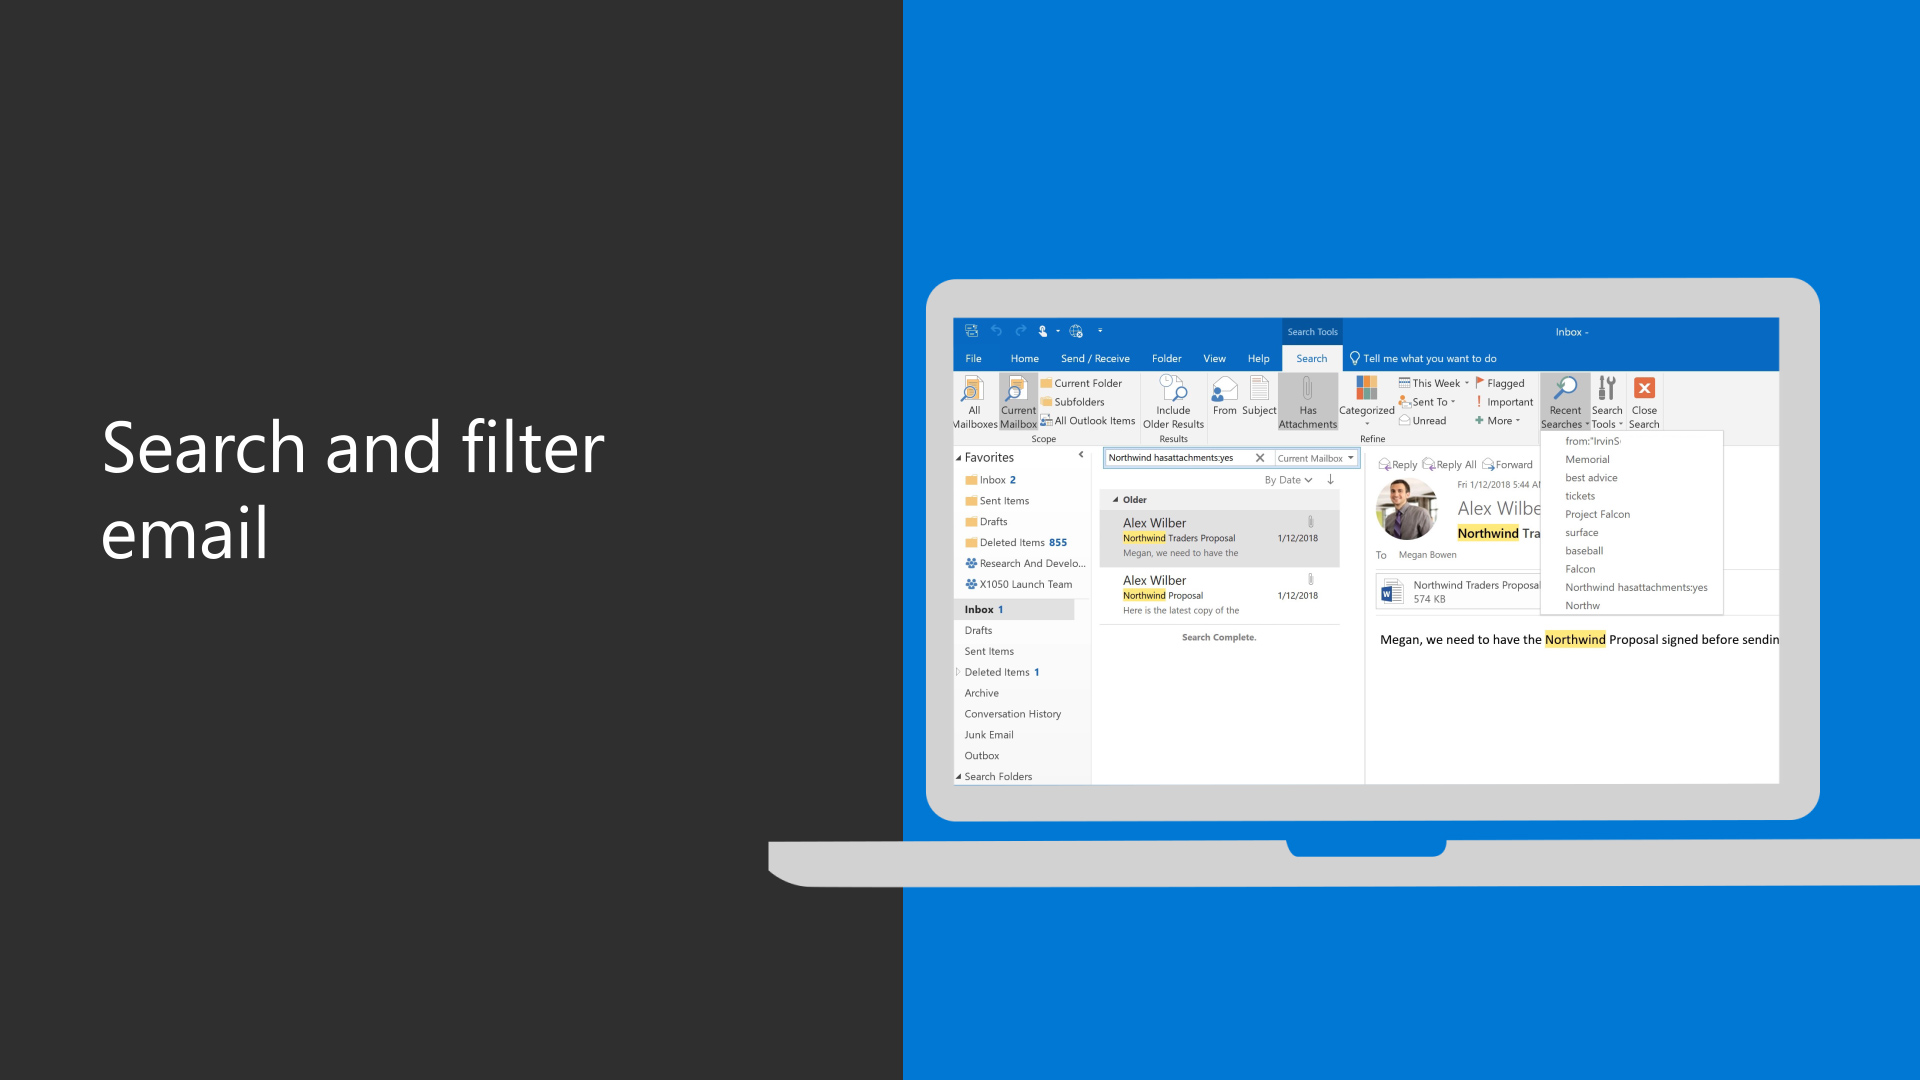 Video: Search and filter email - Outlook